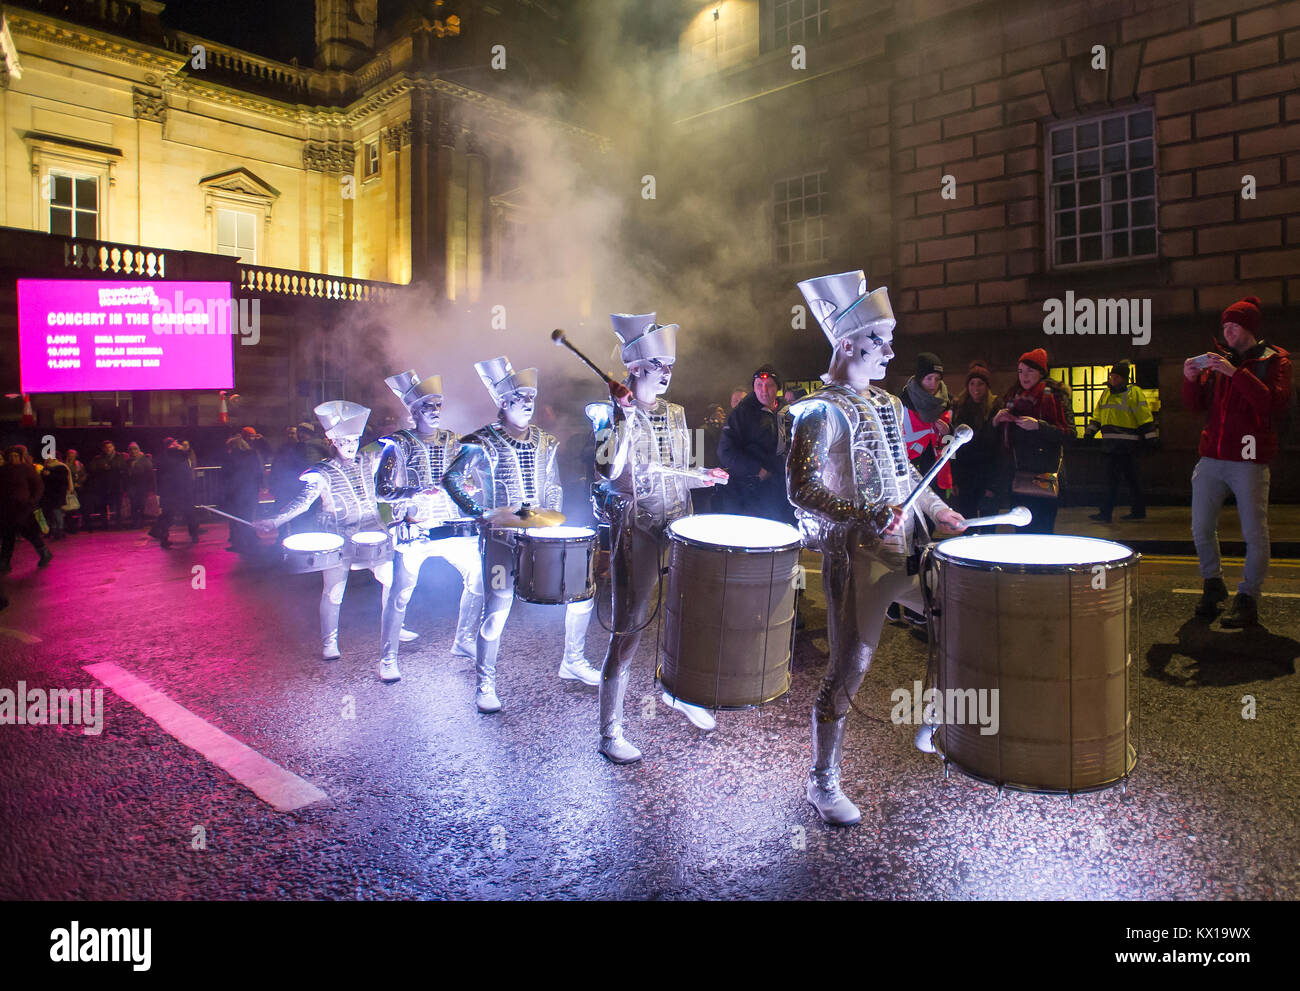 Spark LED Drummers entertain crowds on the Mound as part of the Edinburgh Hogmanay Celebrations 2017/18. - Stock Image